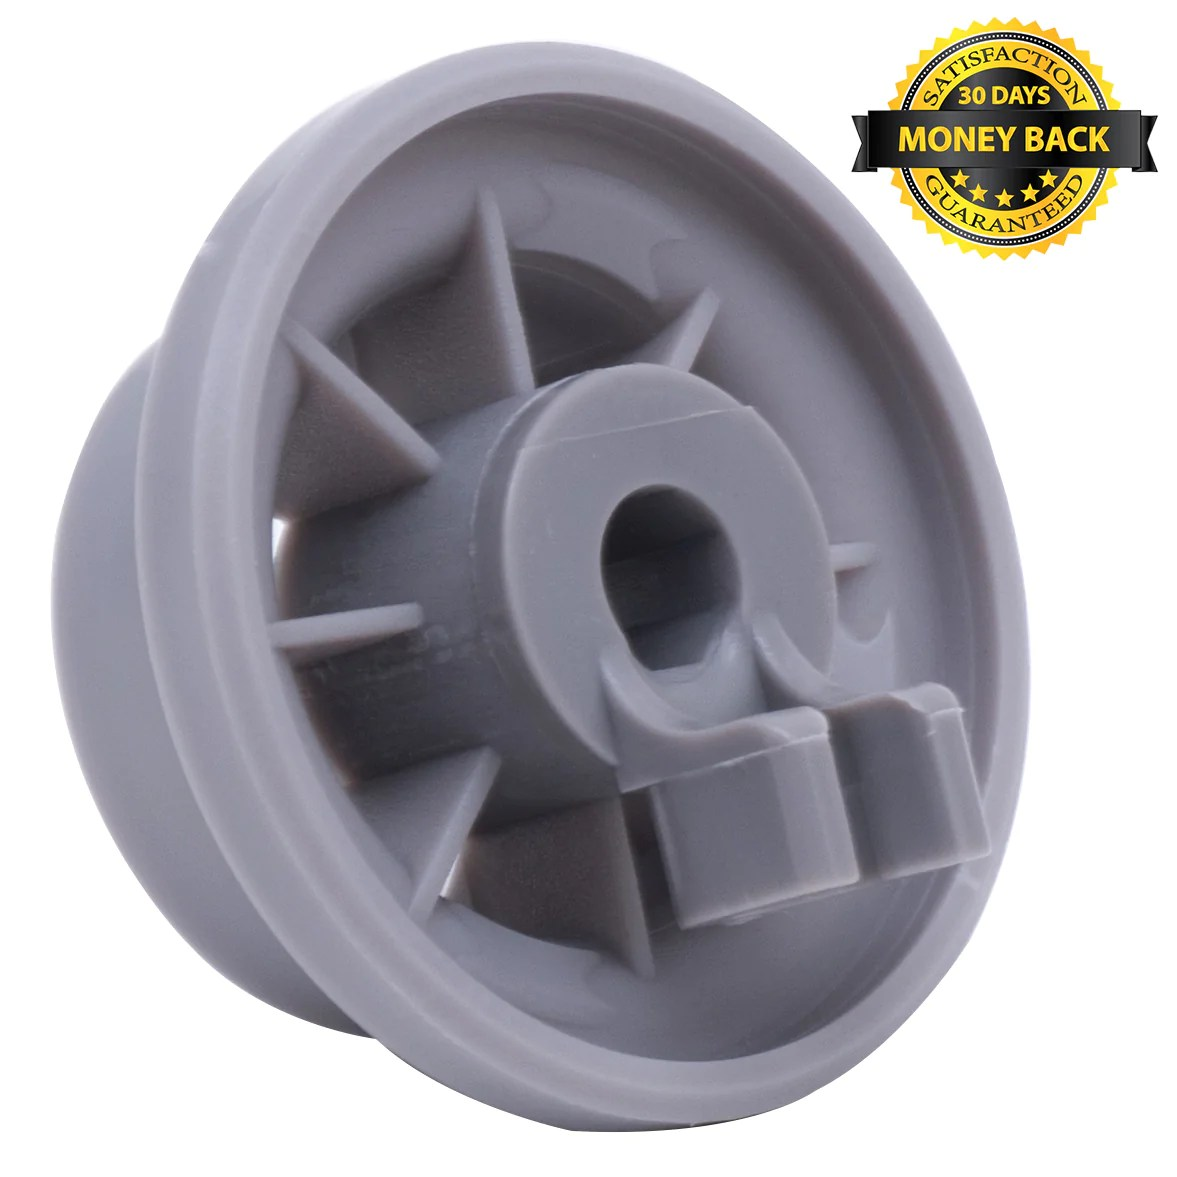 ultra durable 165314 dishwasher lower rack wheel replacement by blue stars exact fit for bosch kenmore dishwasher replaces 00420198 420198